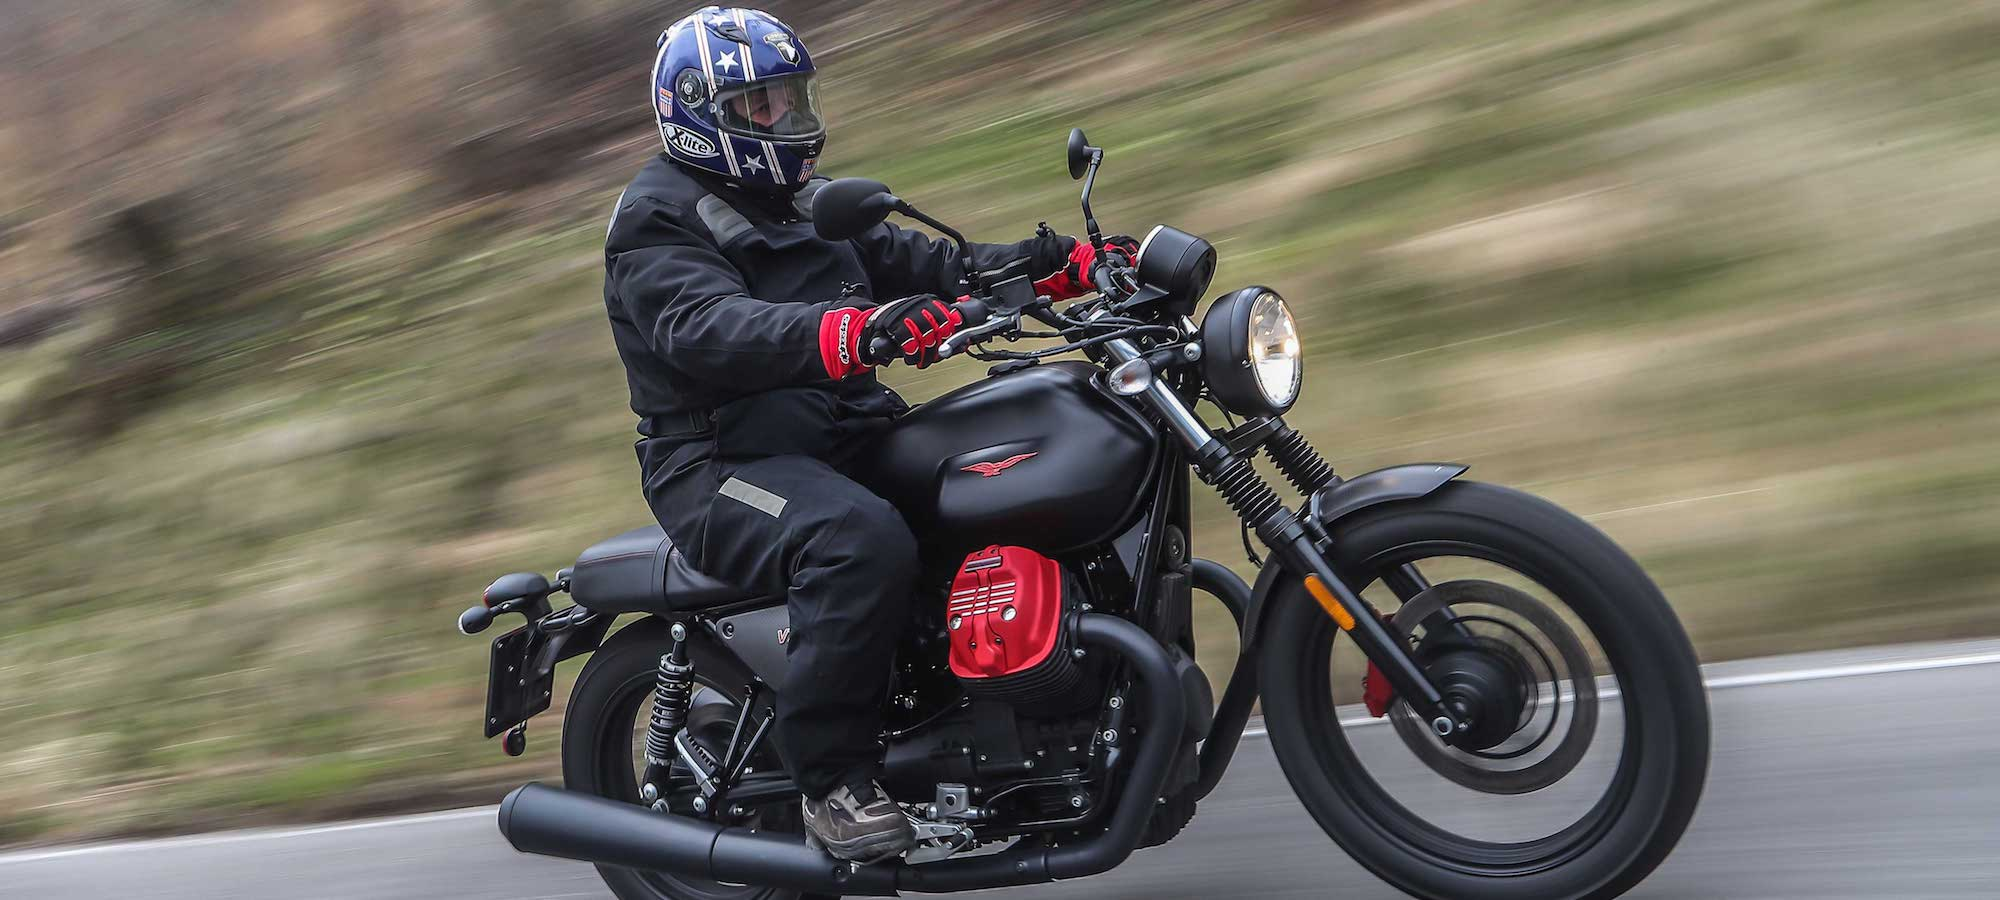 2018 Moto Guzzi V7 III Carbon Dark Review | Cycle World